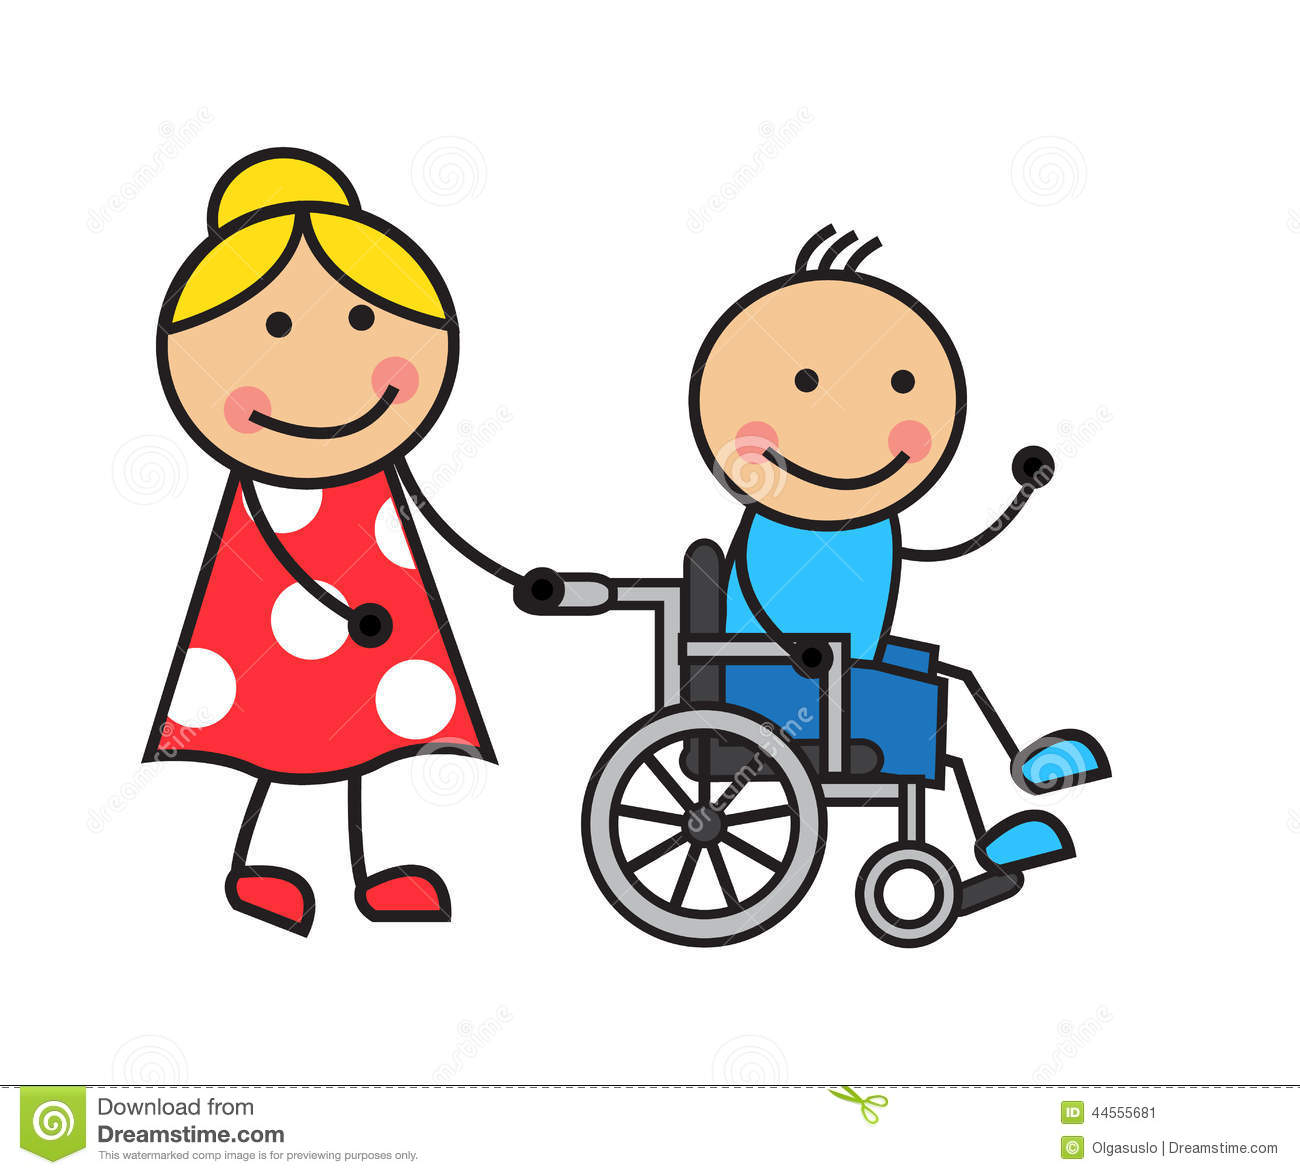 Clip Art Wheelchair Royalty Free Stock Images.